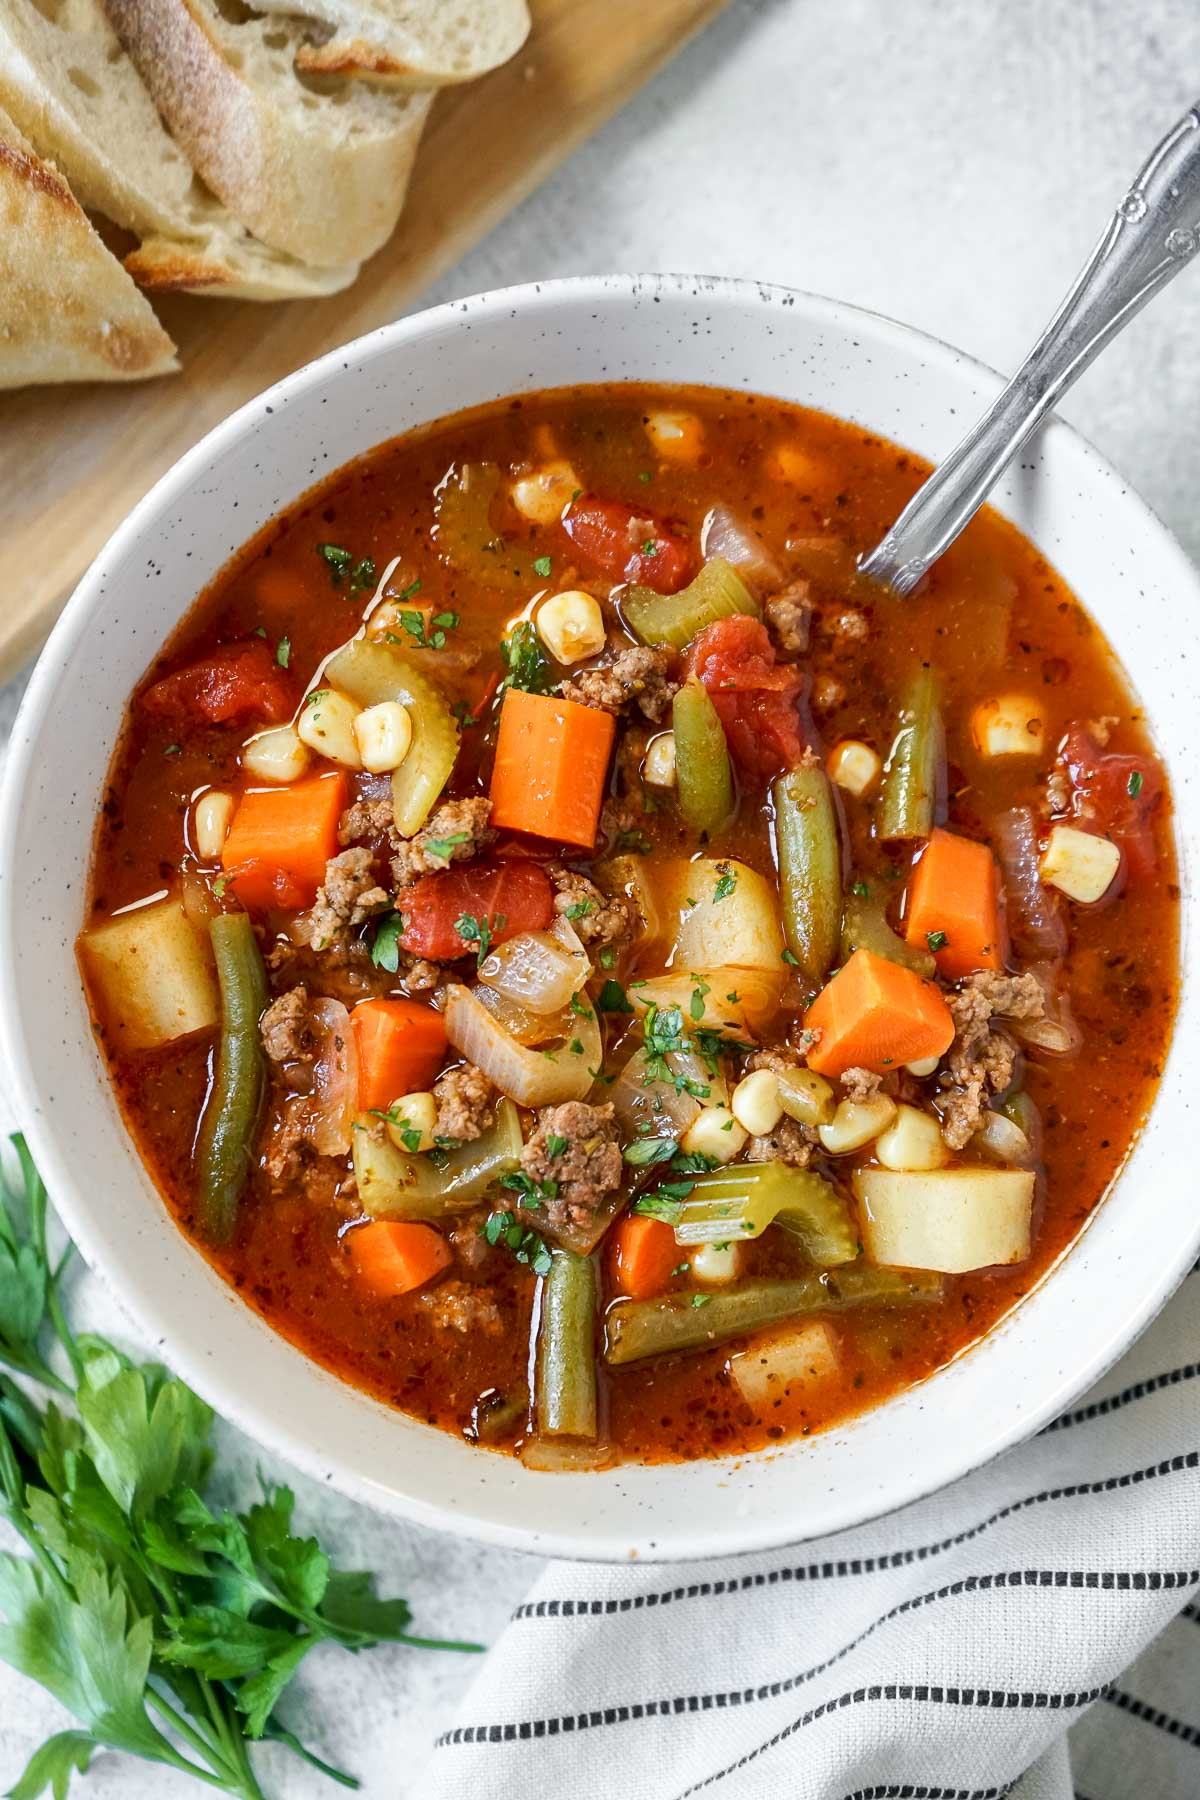 Vegetable Beef Soup in a bowl with a spoon and crusty french bread.